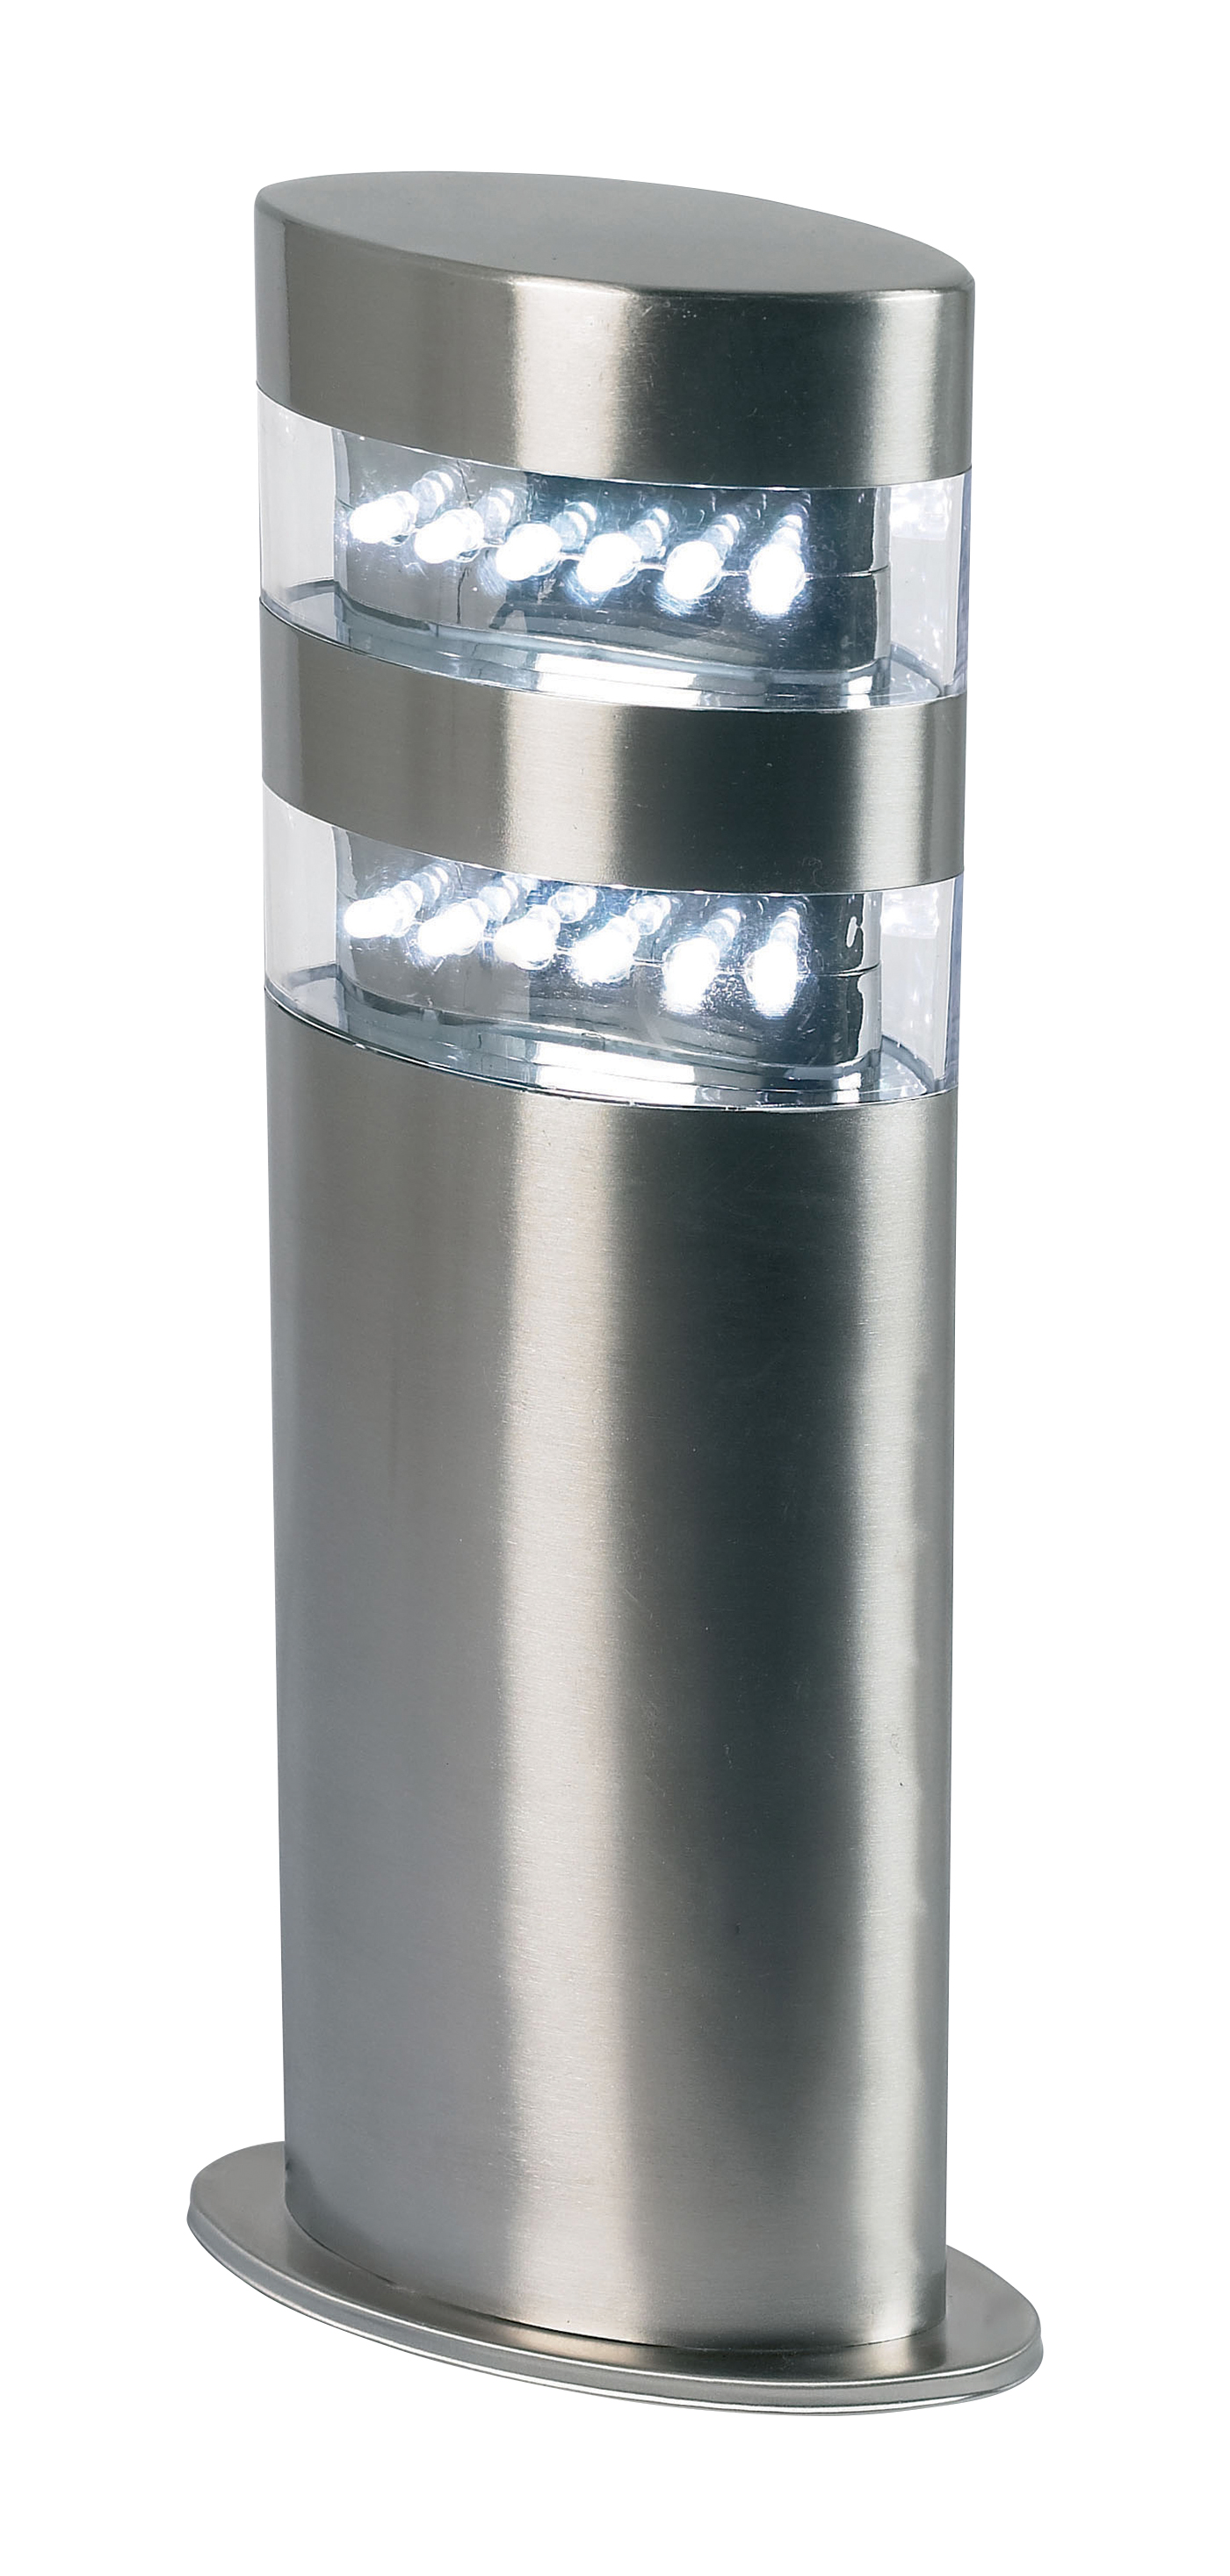 Endon YG-4002-SS Bollard LED 24W 305mm